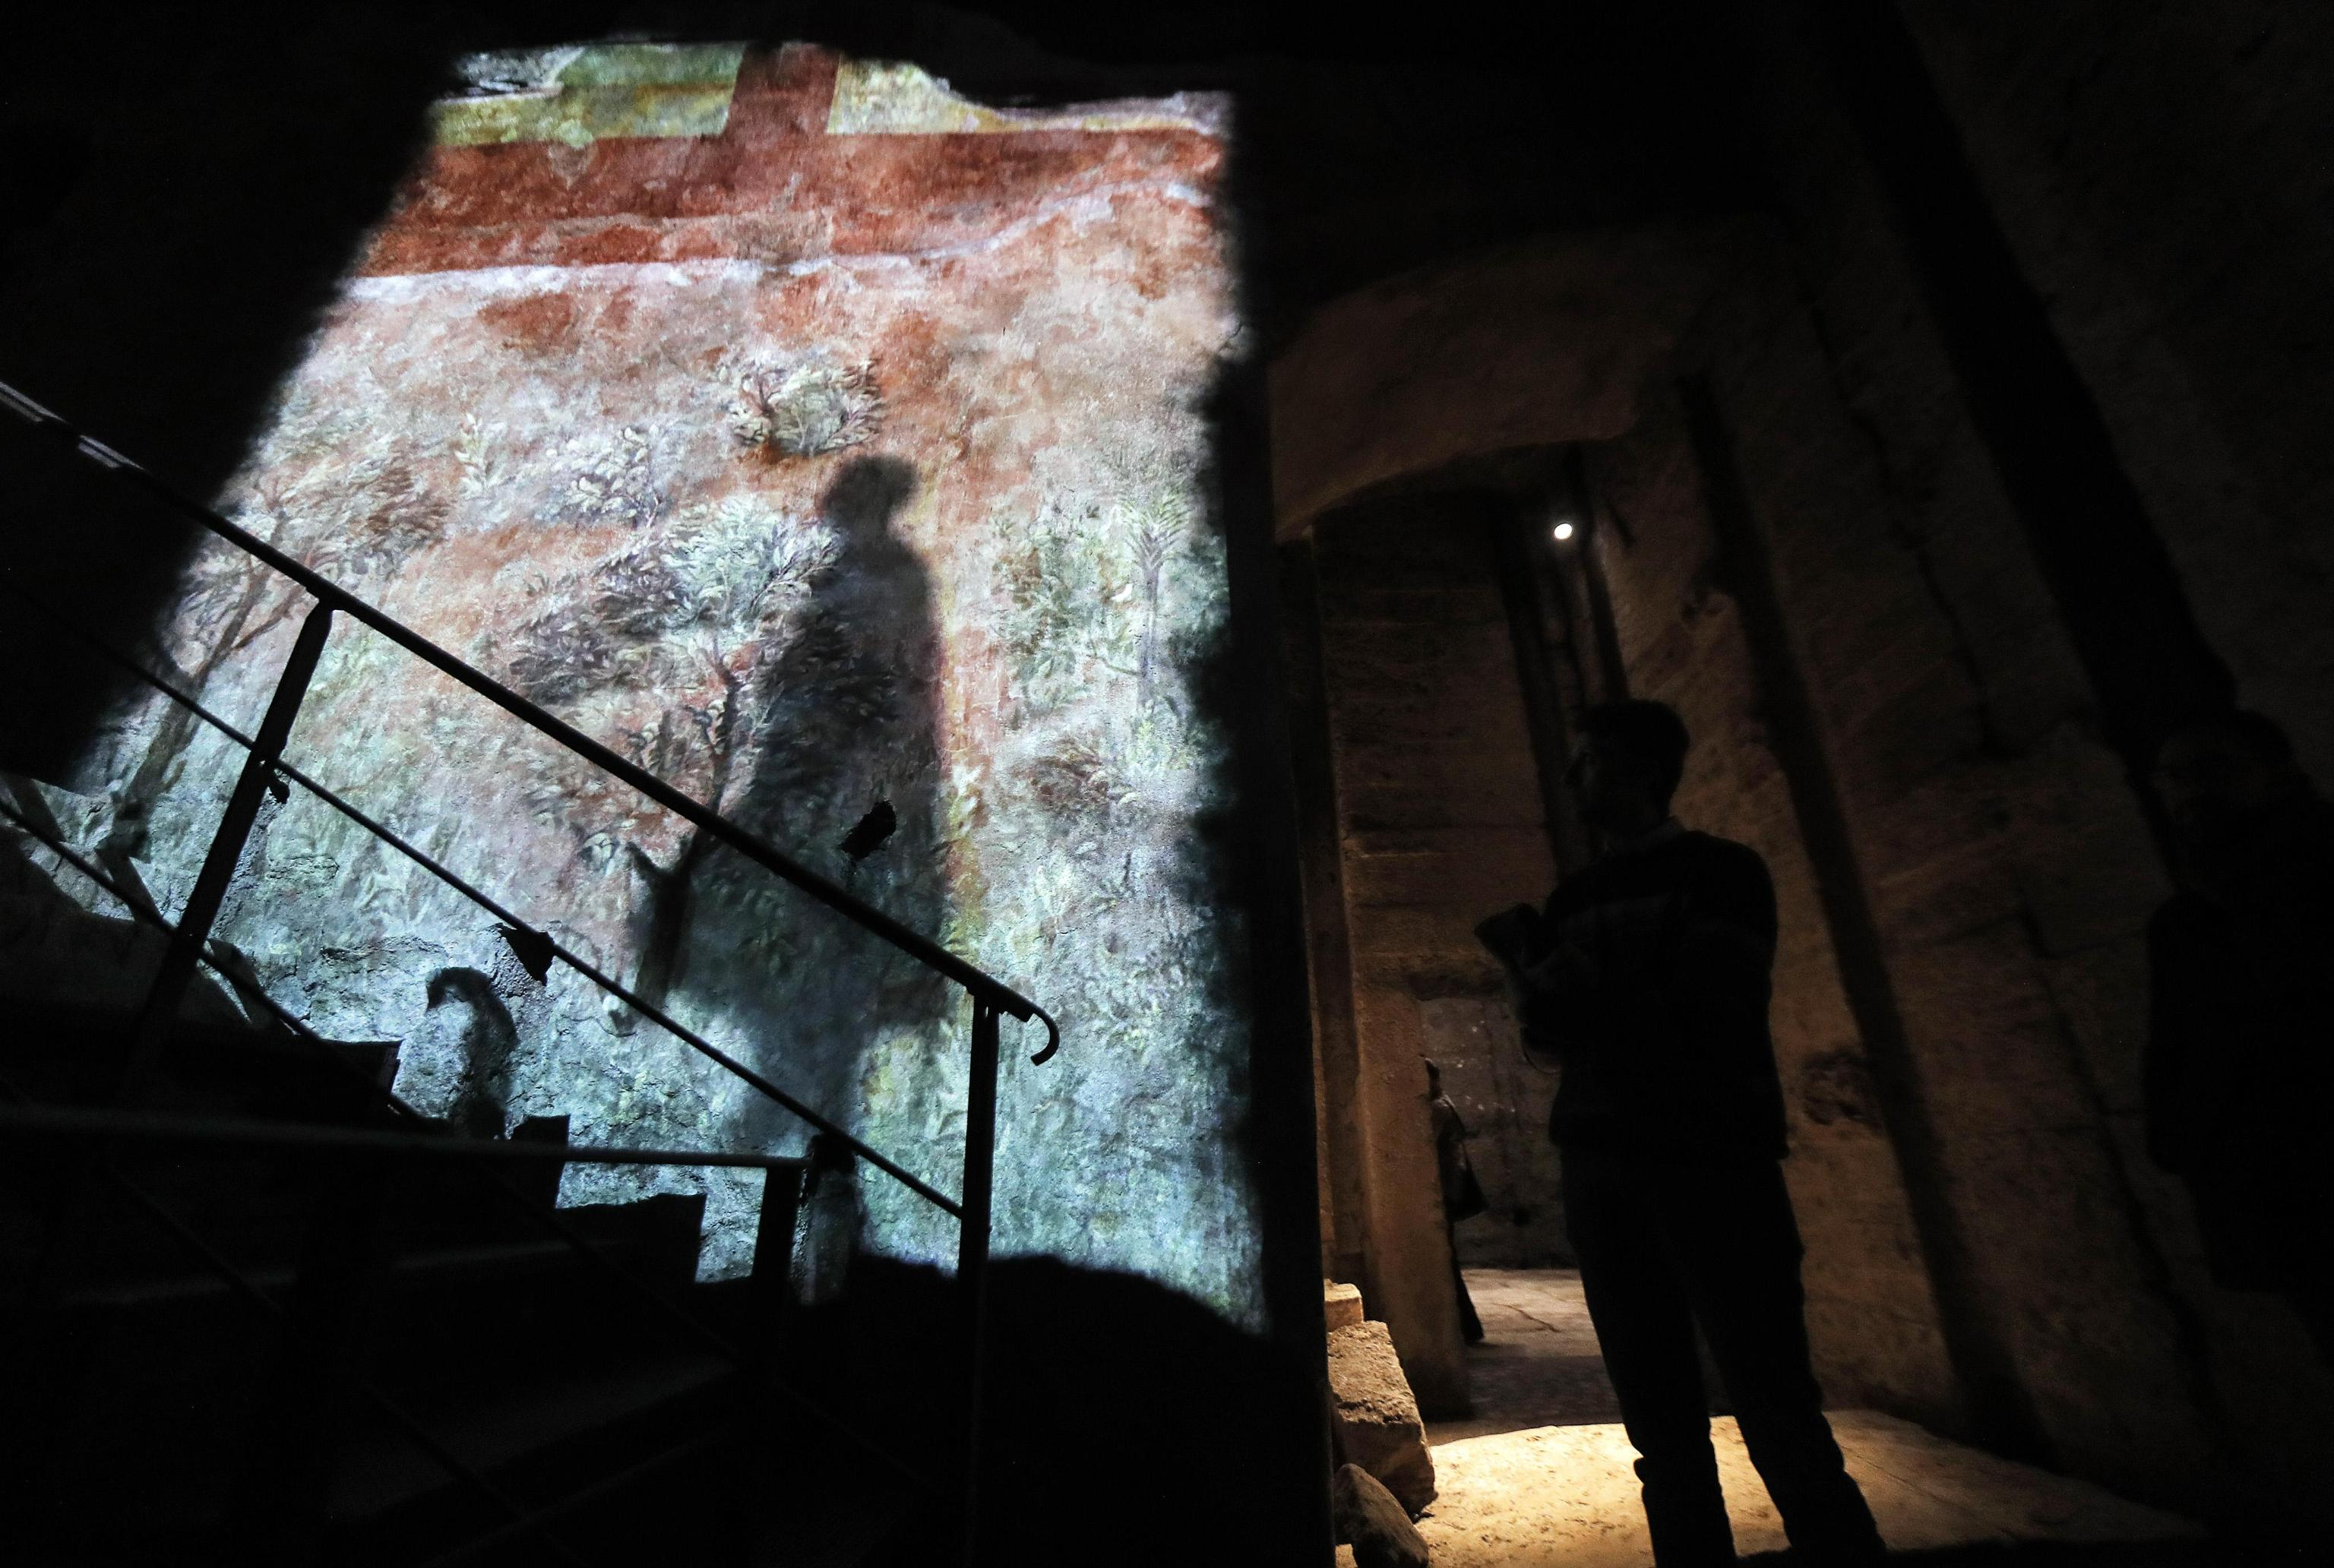 One of the rooms in the 'Domus Transitoria', the first Nero's palace on the Palatine Hill, Colosseum Archeological Park, Rome, Italy, 11 April 2019. ANSA/RICCARDO ANTIMIANI